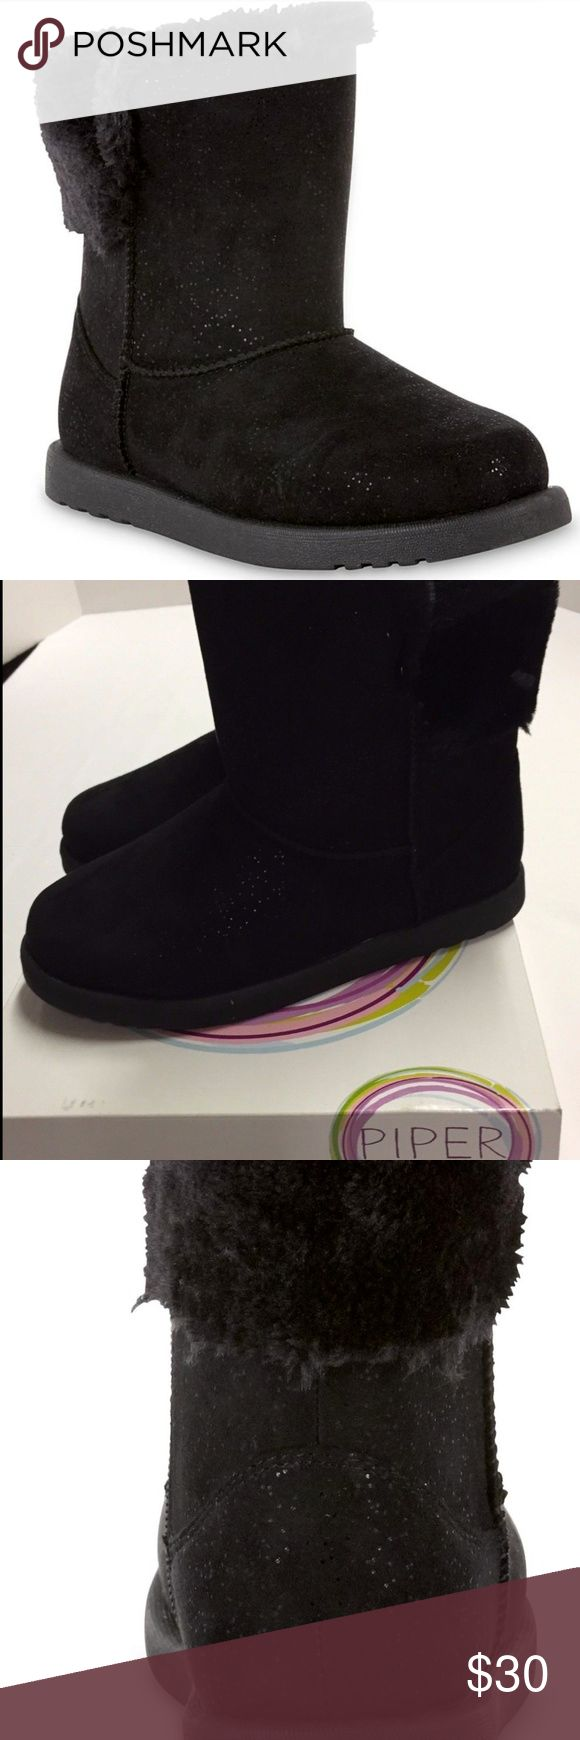 Youth Girls Boots Black Sparkle Size 5 NEW Youth Girls Boots ~ Black Sparkle ~ Size 5 ~ Piper Cindy Cozy Child Boots ~ Kids Casual Winter or Fall Fashion Style Shoes ~ Keep her toasty in trendy style with these girls' Cindy cozy boots. The faux fur collar makes these mid-calf boots a prime fashion pick for the season, along with a soft faux suede upper that's speckled with flecks of glitter. A side zipper helps ease her feet in and out. A sturdy rubber sole means she can trek anywhere with…